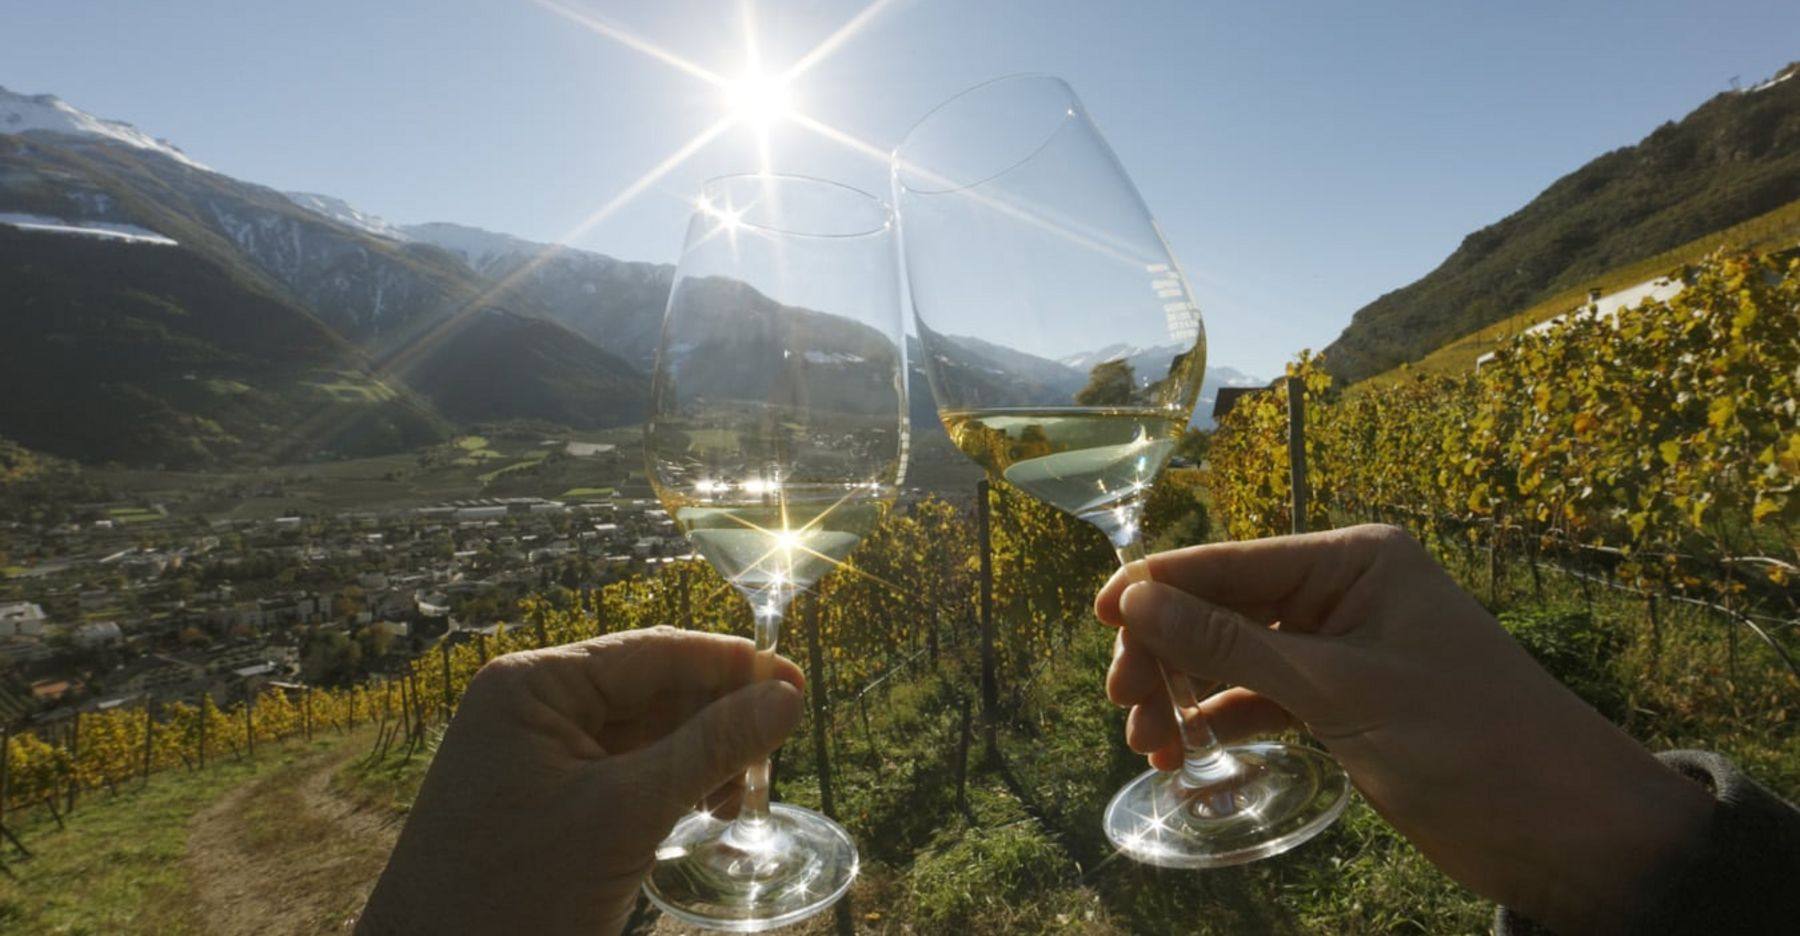 Gourmetherbst & Riesling